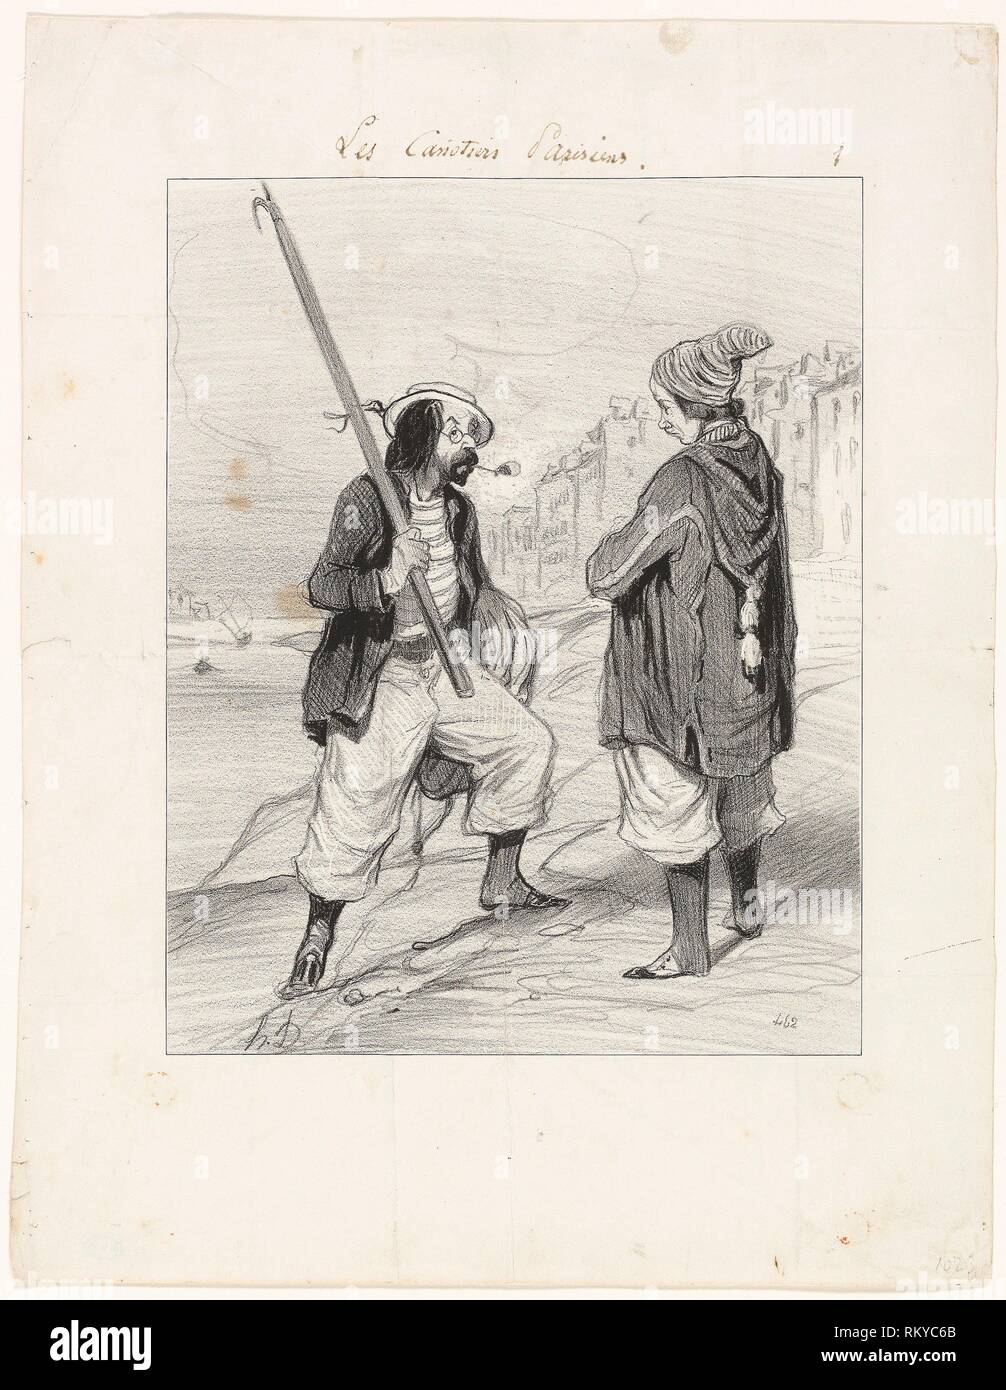 All Right Rigobert, My Old Friend…, plate one from Les Canotiers Parisiens - 1843 - Honoré-Victorin Daumier French, 1808-1879 - Artist: - Stock Image